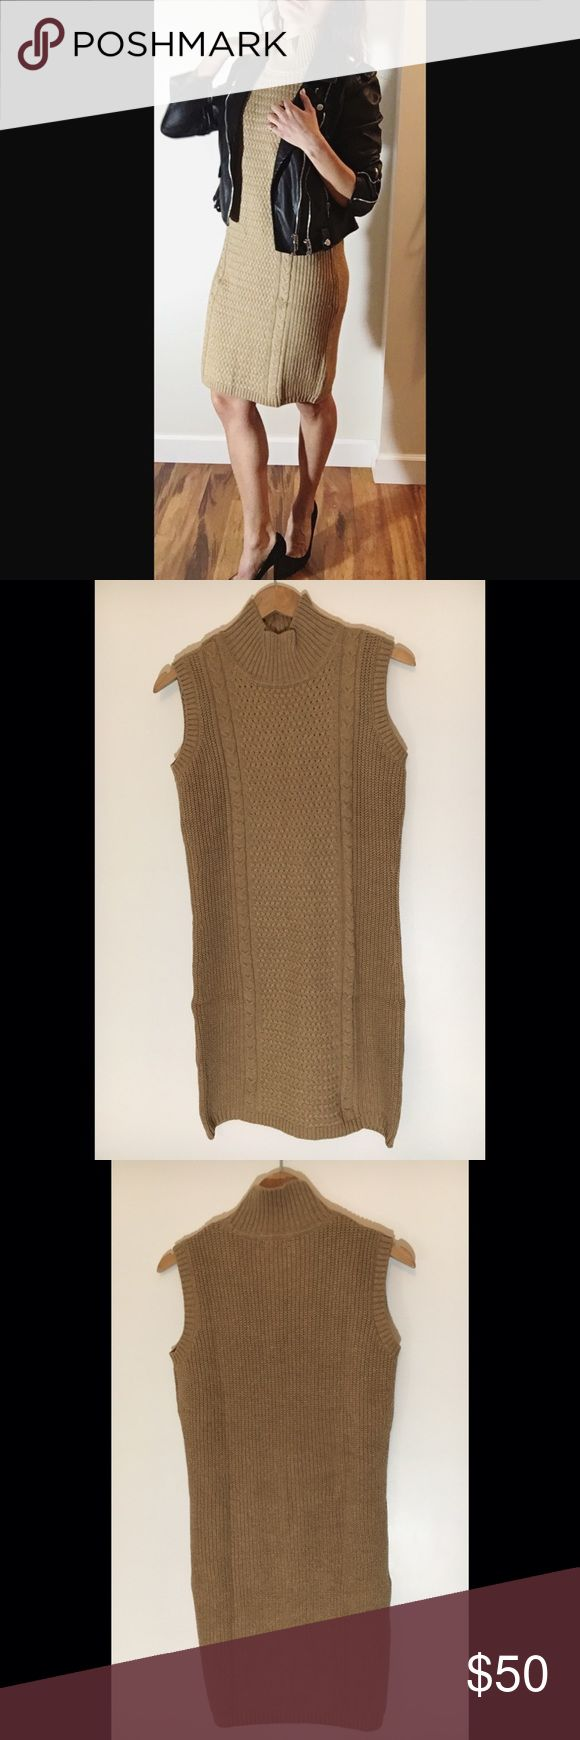 NWT Banana Republic Knit Turtleneck Dress -Banana Republic Knit Turtleneck Dress  - Camel colored knot dress with Turtleneck and no sleeves   -75% cotton 21% acrylic 4% fiber  - NEW WITH TAGS Banana Republic Dresses Mini